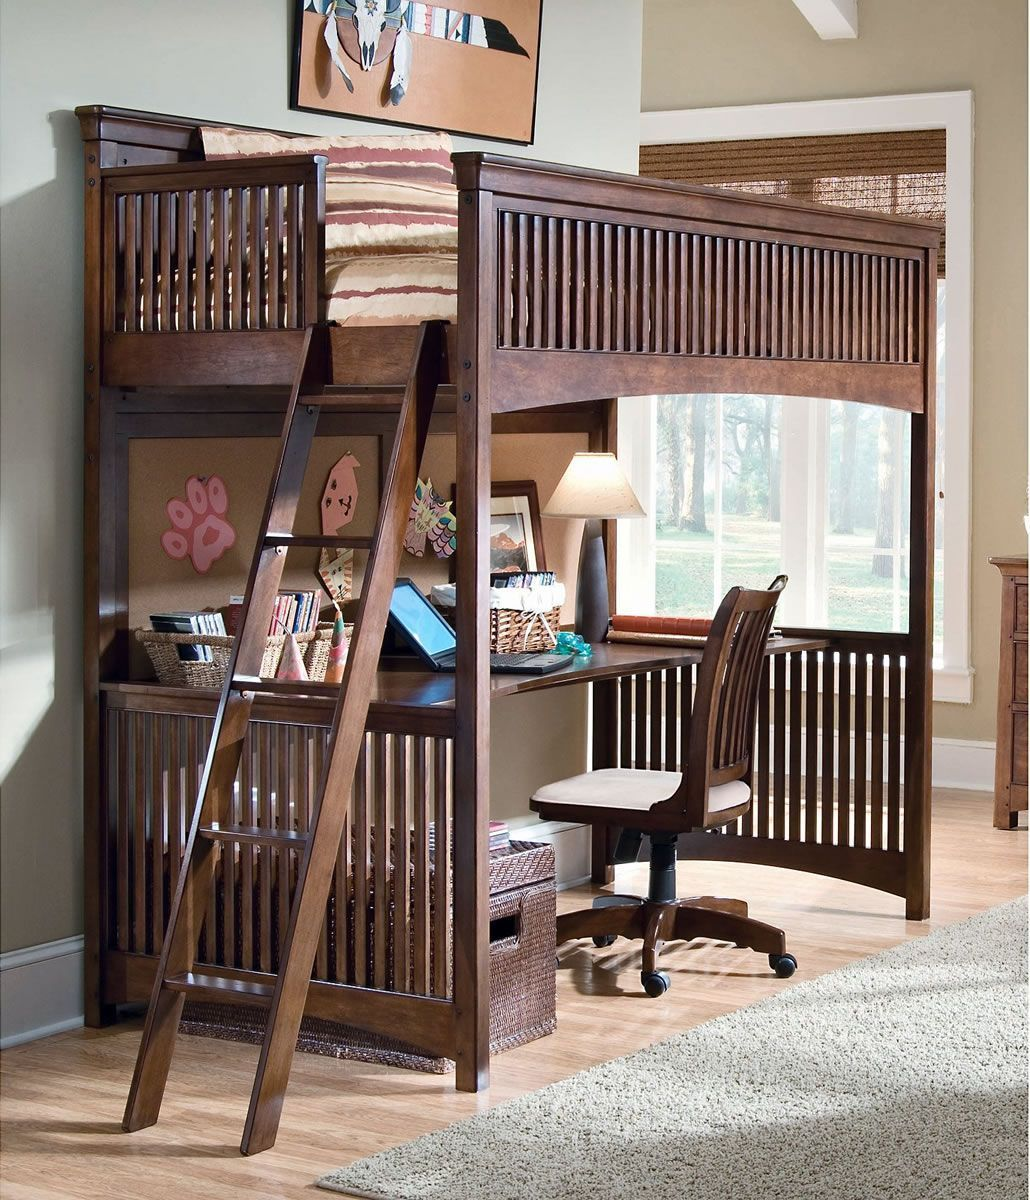 Loft bed ideas for small spaces  Loft Beds for kids youth teen college students adults diy